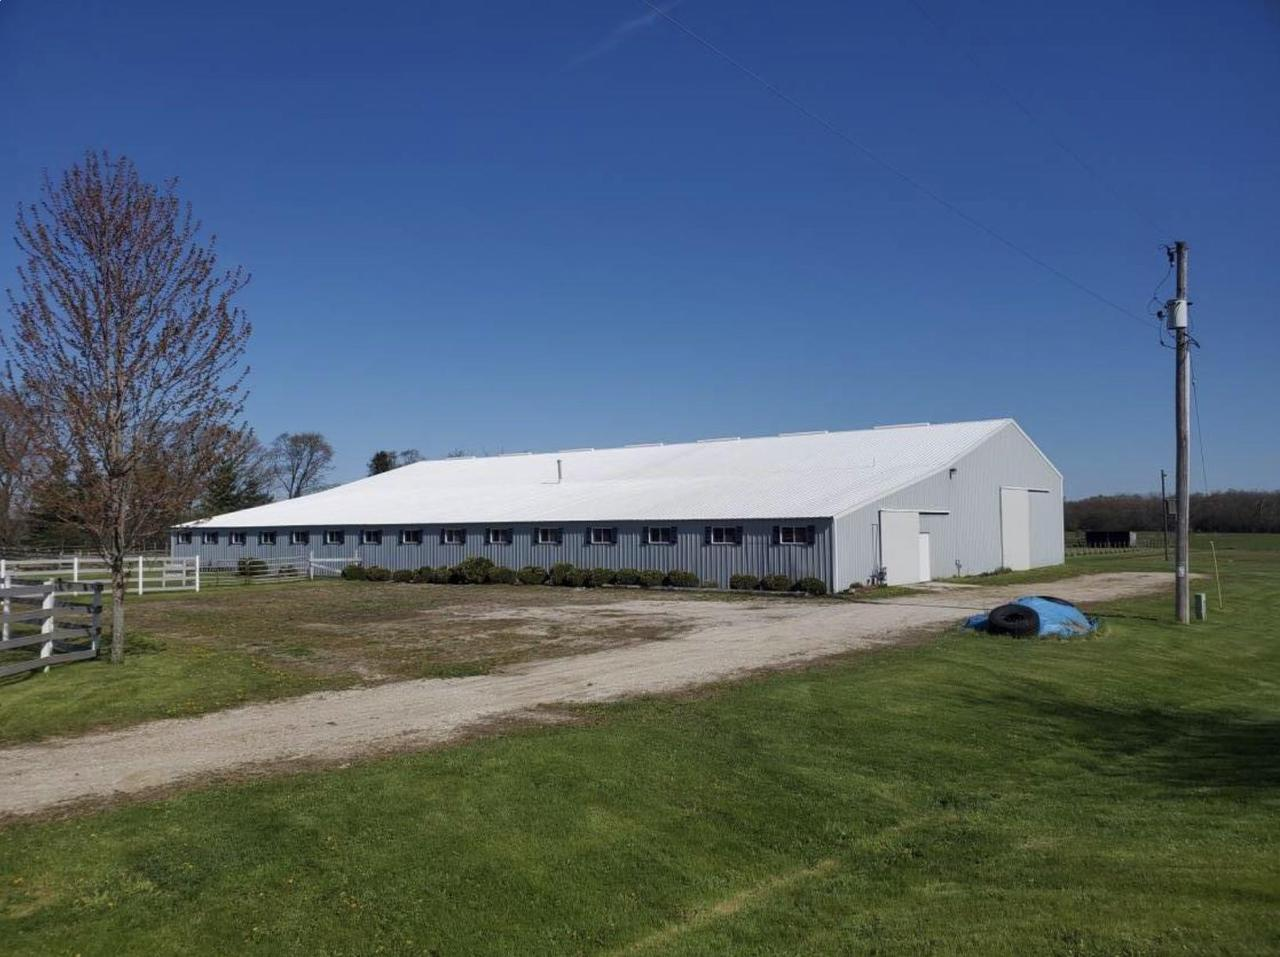 The perfect set up for commercial boarding, training, and/or breeding - Fully updated property in a prime location! 150x100 barn w/21 (heated) stalls-12 w/comfort mats, 2 tack rms, supply rm, grain rm, wash stall & grooming stall, 1/2 bath, 150x60 indoor arena & hay barn lean-too. 2 grass pastures w/shelters, hay field, 5 paddocks w/auto-waterers & no maintenance fencing. Additional 2 pastures easily converted to additional paddocks w/auto waterers. Rubber coated barn roof. House is totally updated w/wood floors throughout, 3 bedrooms, 2 fireplaces & separate quarters w/kit & 2 BRs. Conditional use on file for commercial operation. 24 flat, tree-lined acres! Call today for your showing.